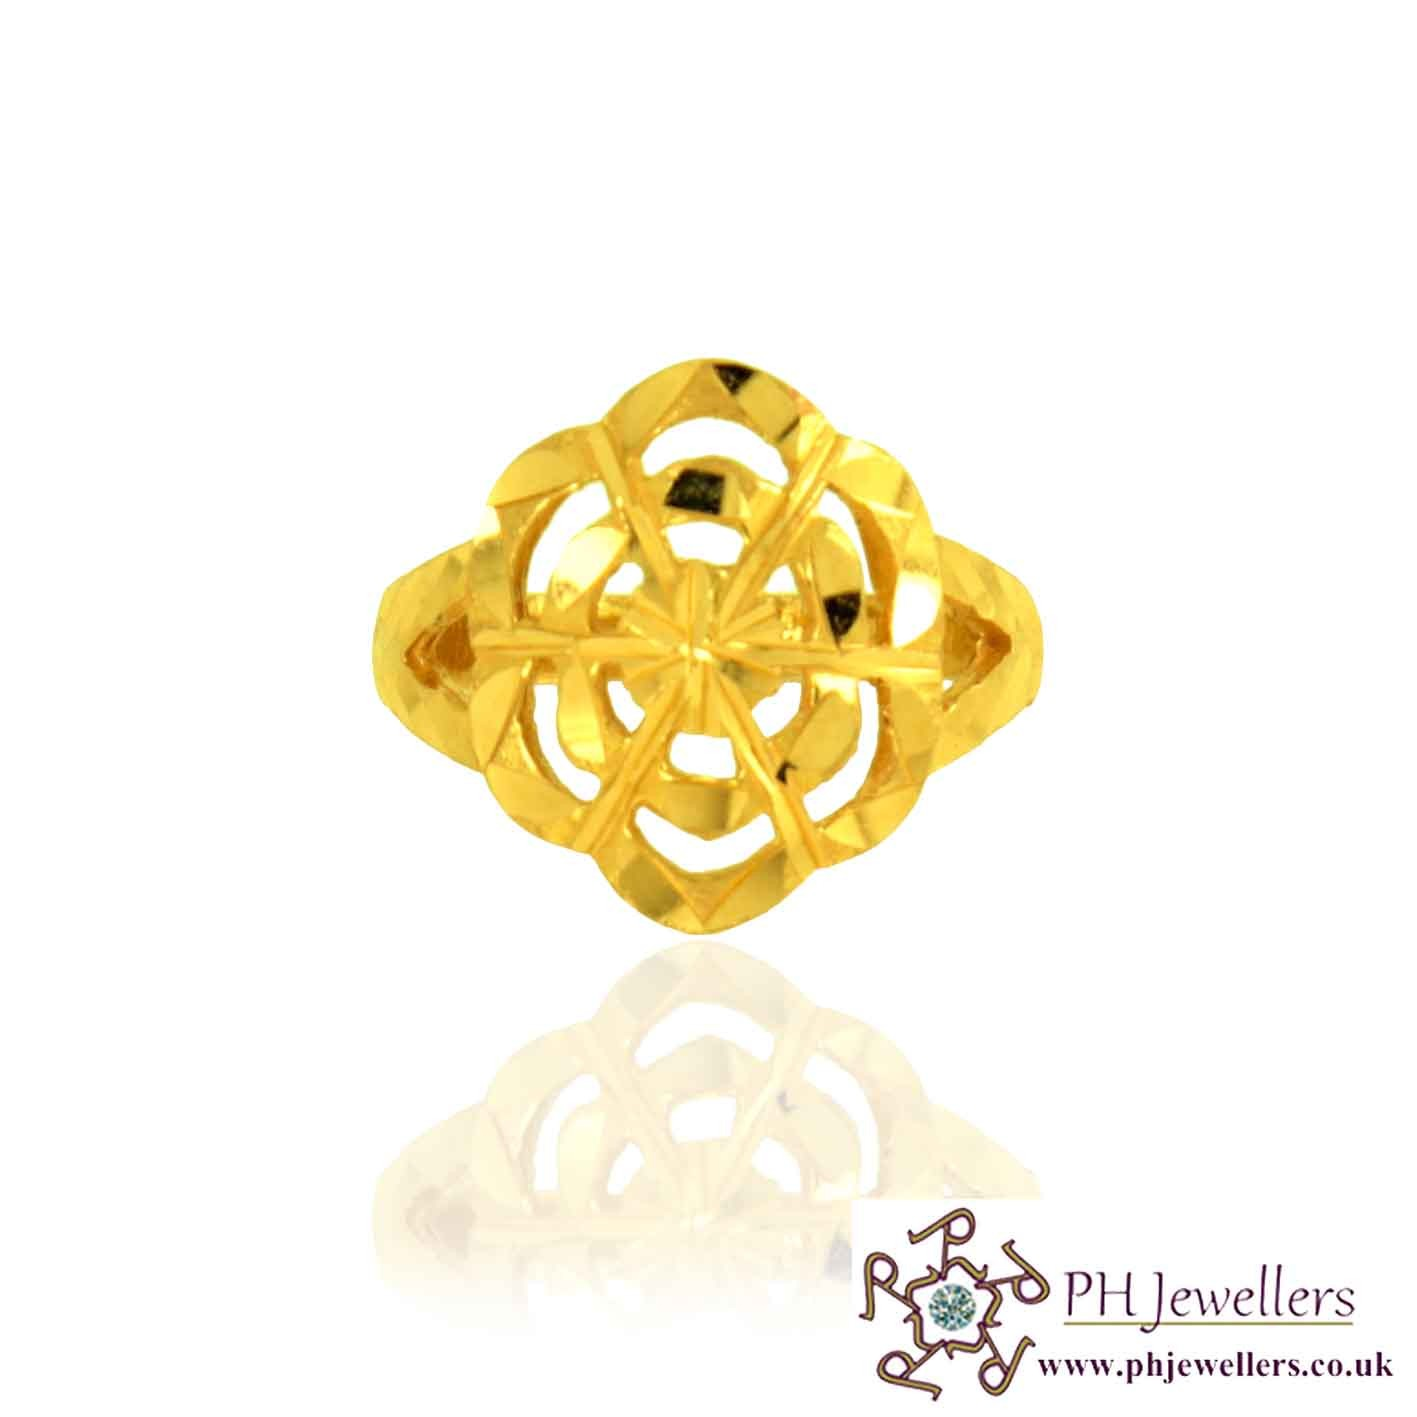 Online gold jewellery gold jewellery 22ct 916 hallmark yellow gold online gold jewellery gold jewellery 22ct 916 hallmark yellow gold size n flower ring pr28 22 carat gold jewellers mightylinksfo